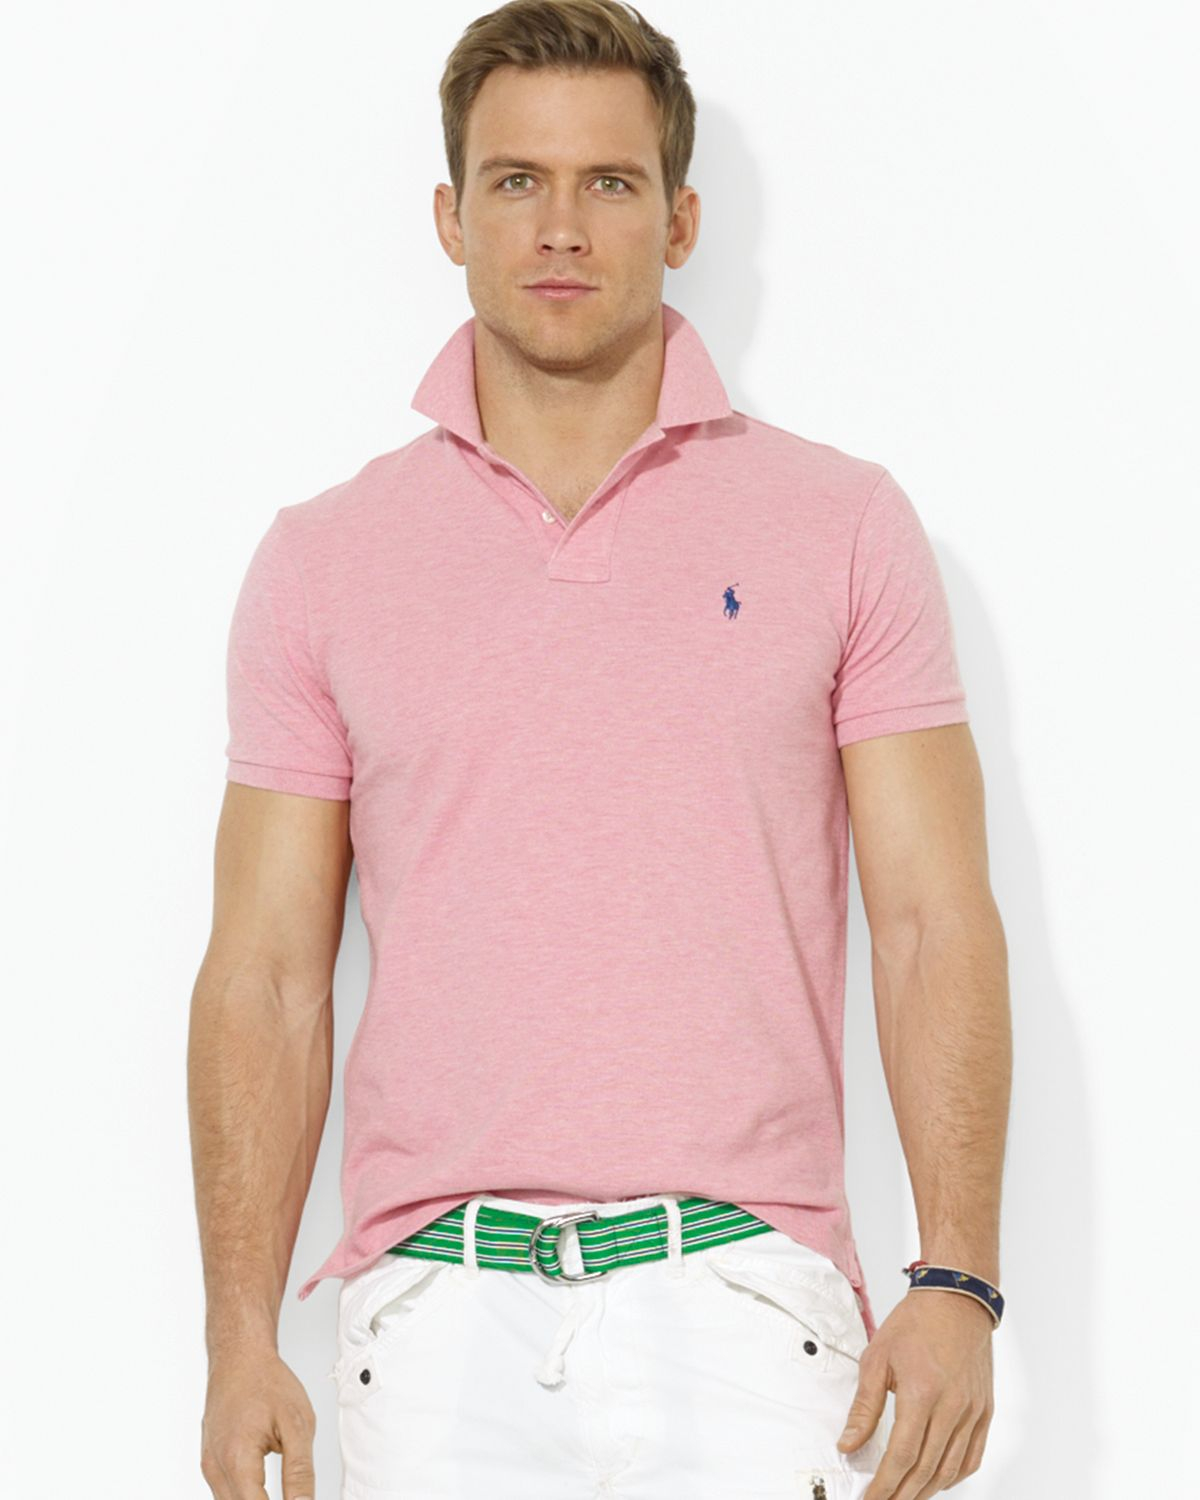 Lyst ralph lauren polo custom mesh polo shirt slim fit Man in polo shirt